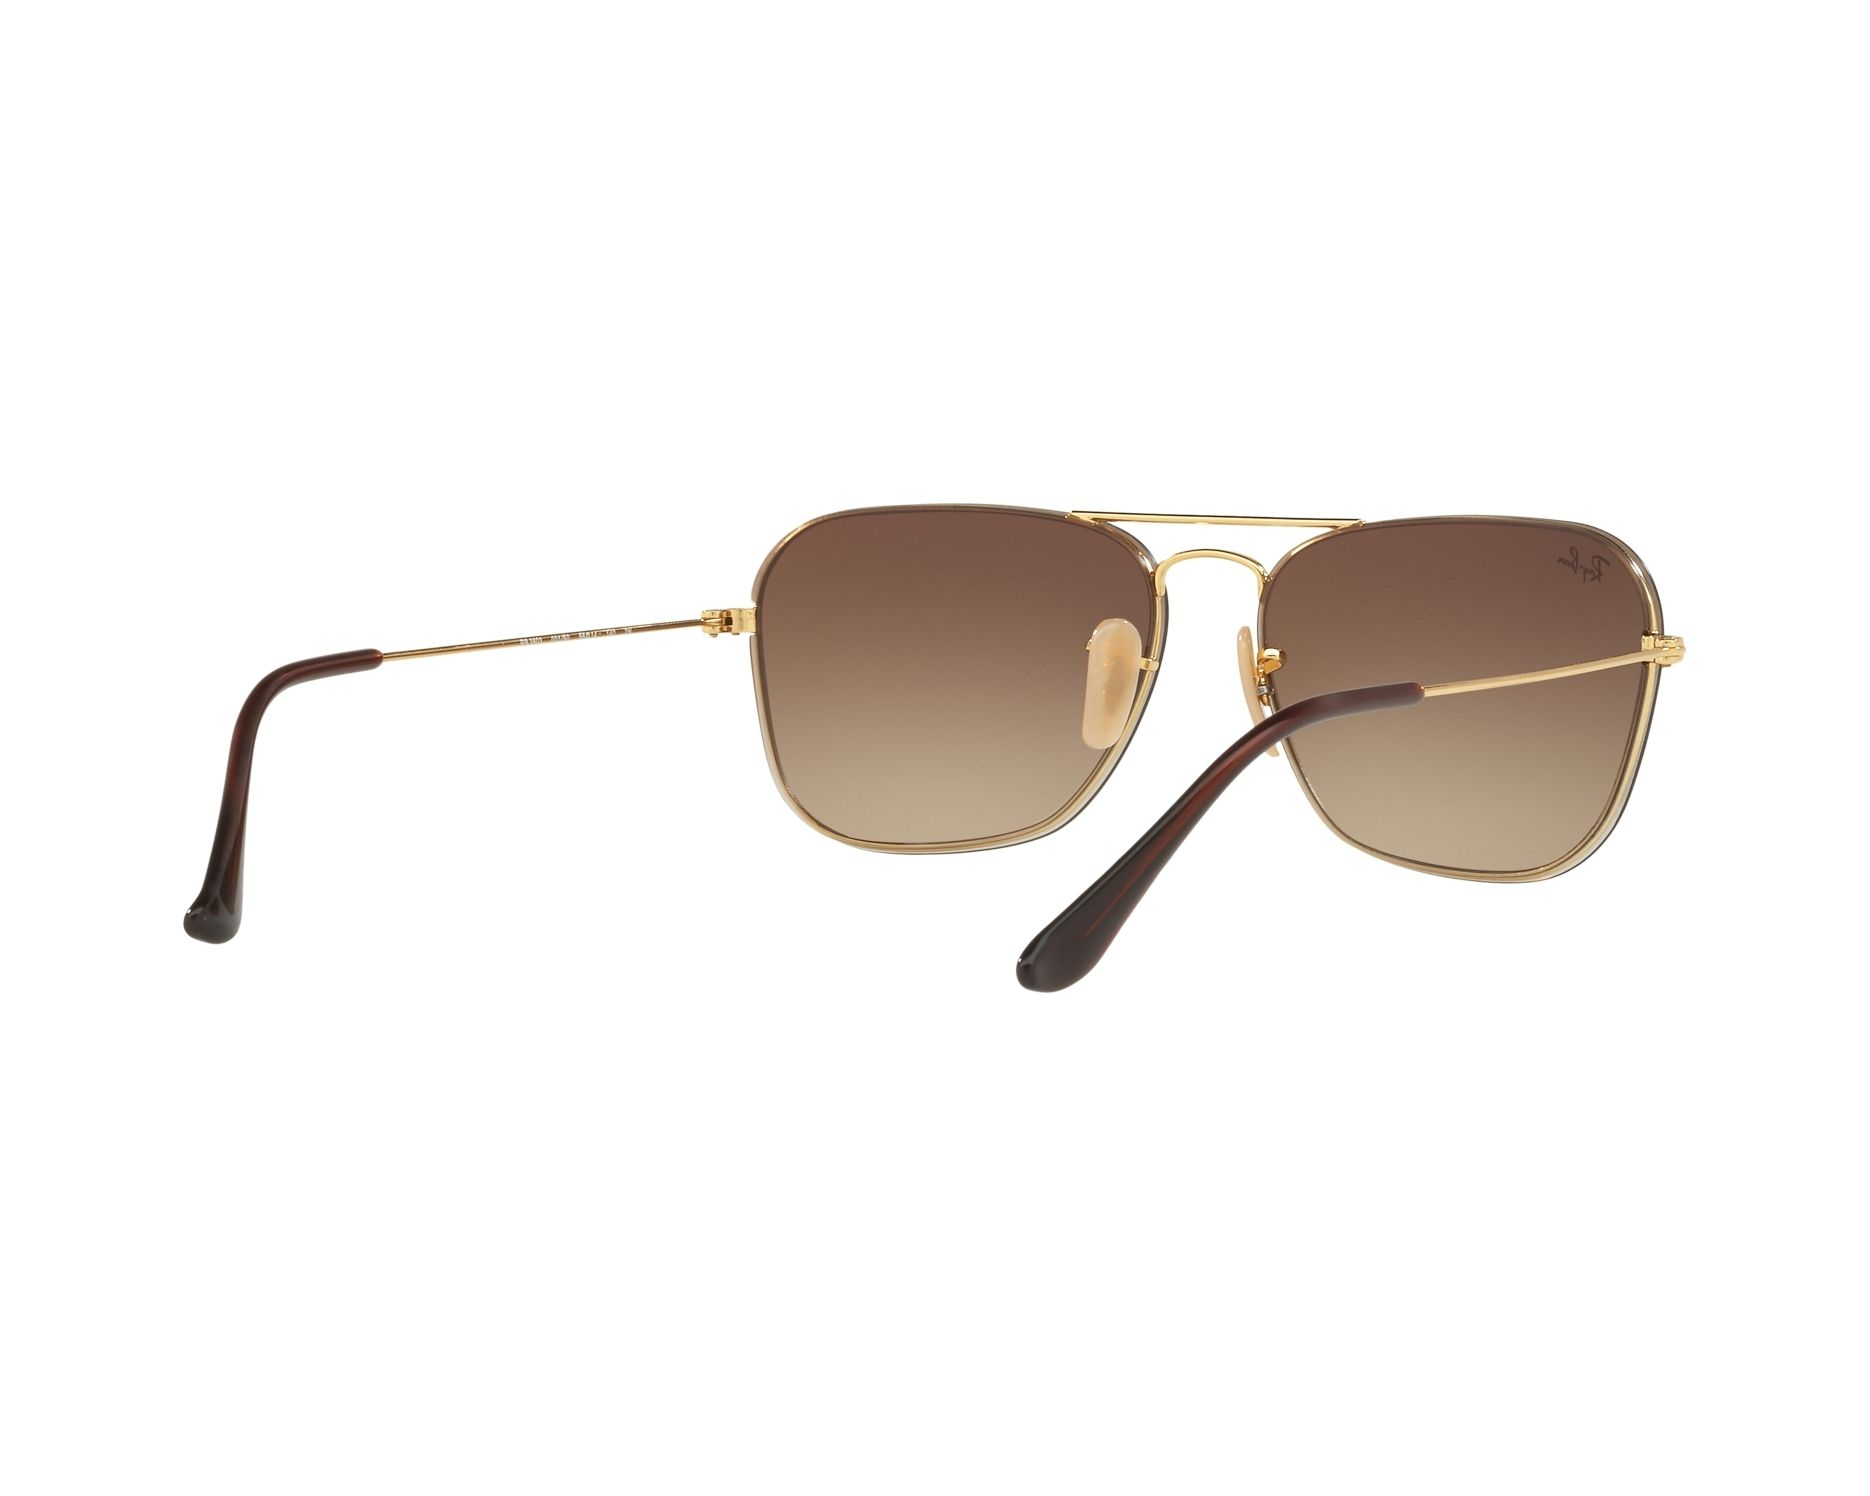 7064473464 Sunglasses Ray-Ban RB-3603 001 S0 56-14 Gold 360 degree